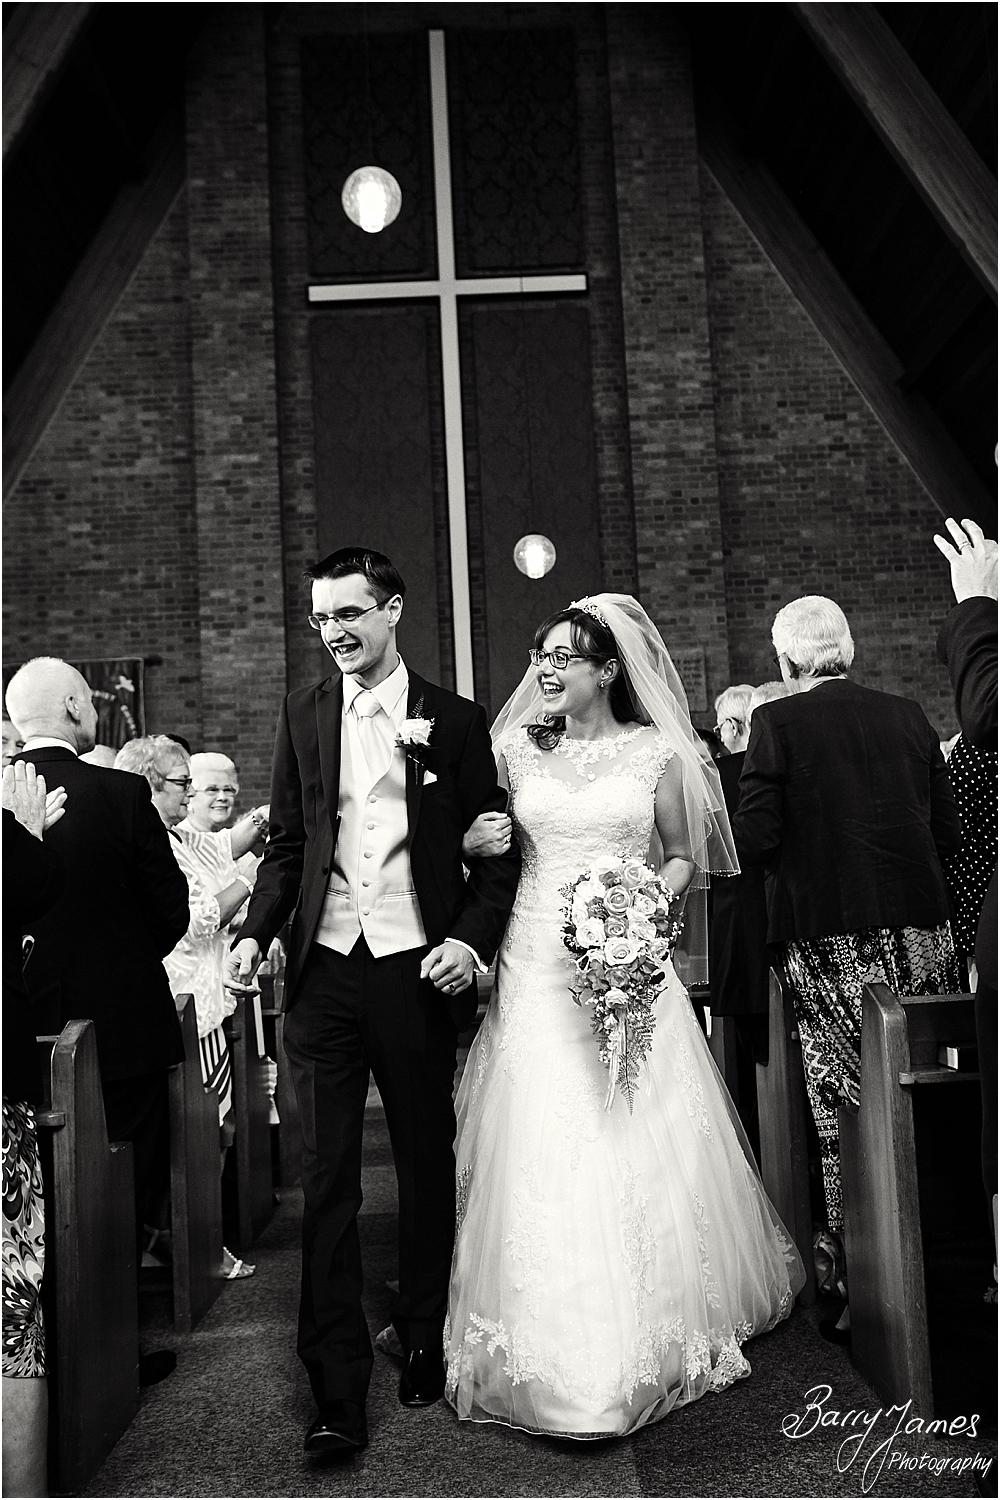 Candid photographs of the beautiful recessional for the newly married Mr & Mrs Booth at Brownhills Methodist Church in Walsall by Walsall Wedding Photographer Barry James